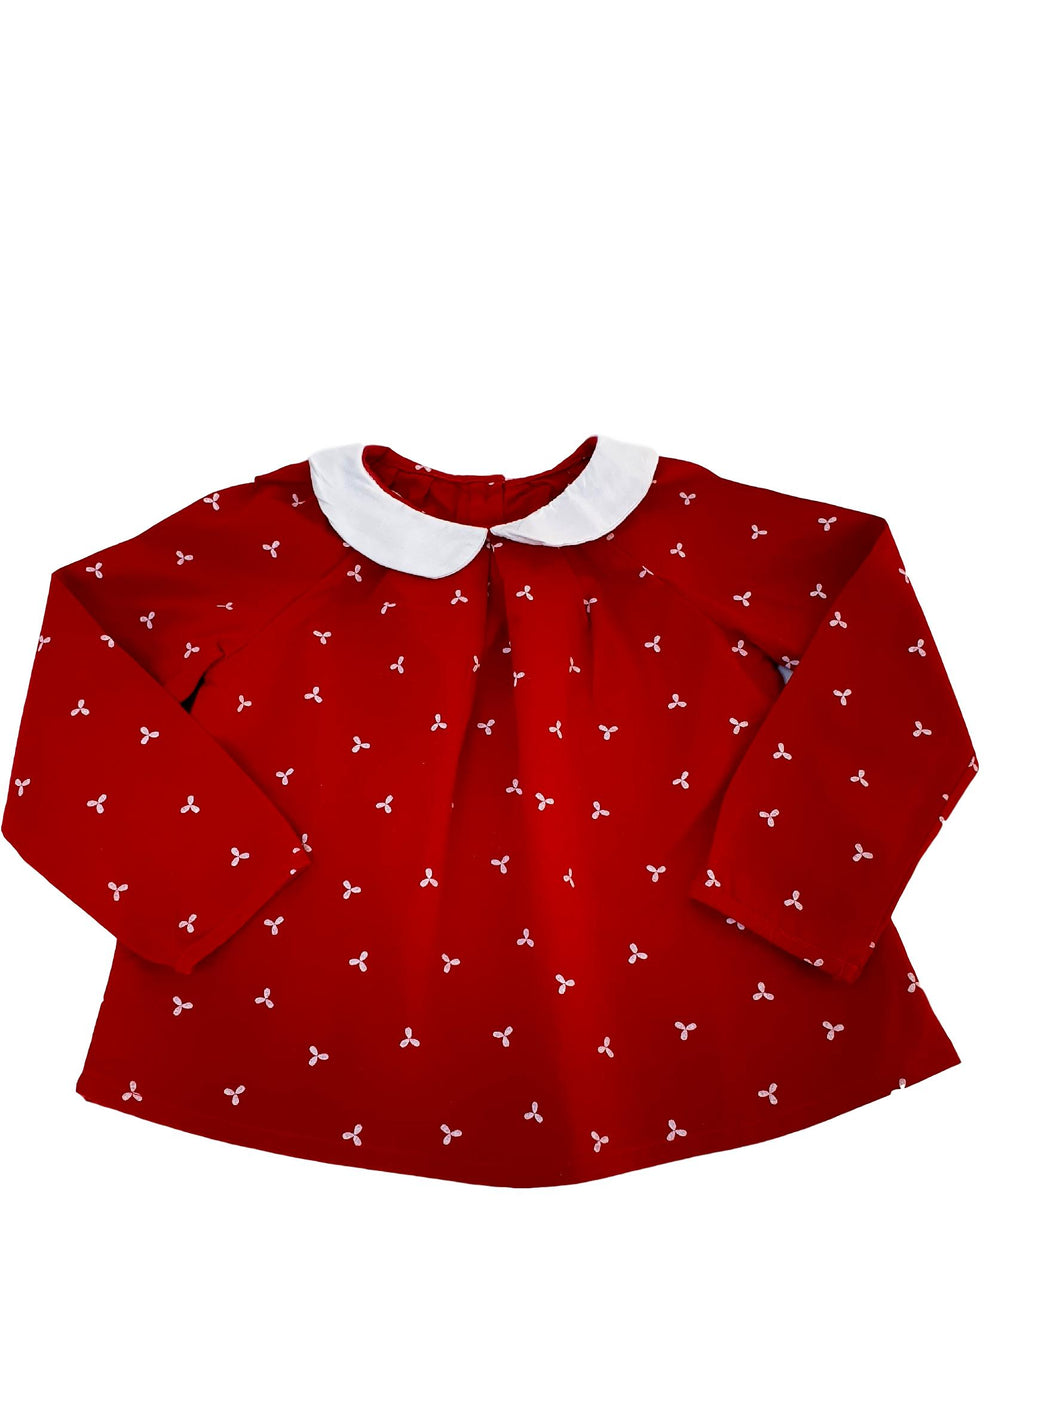 ALICE A PARIS girl blouse 3yo